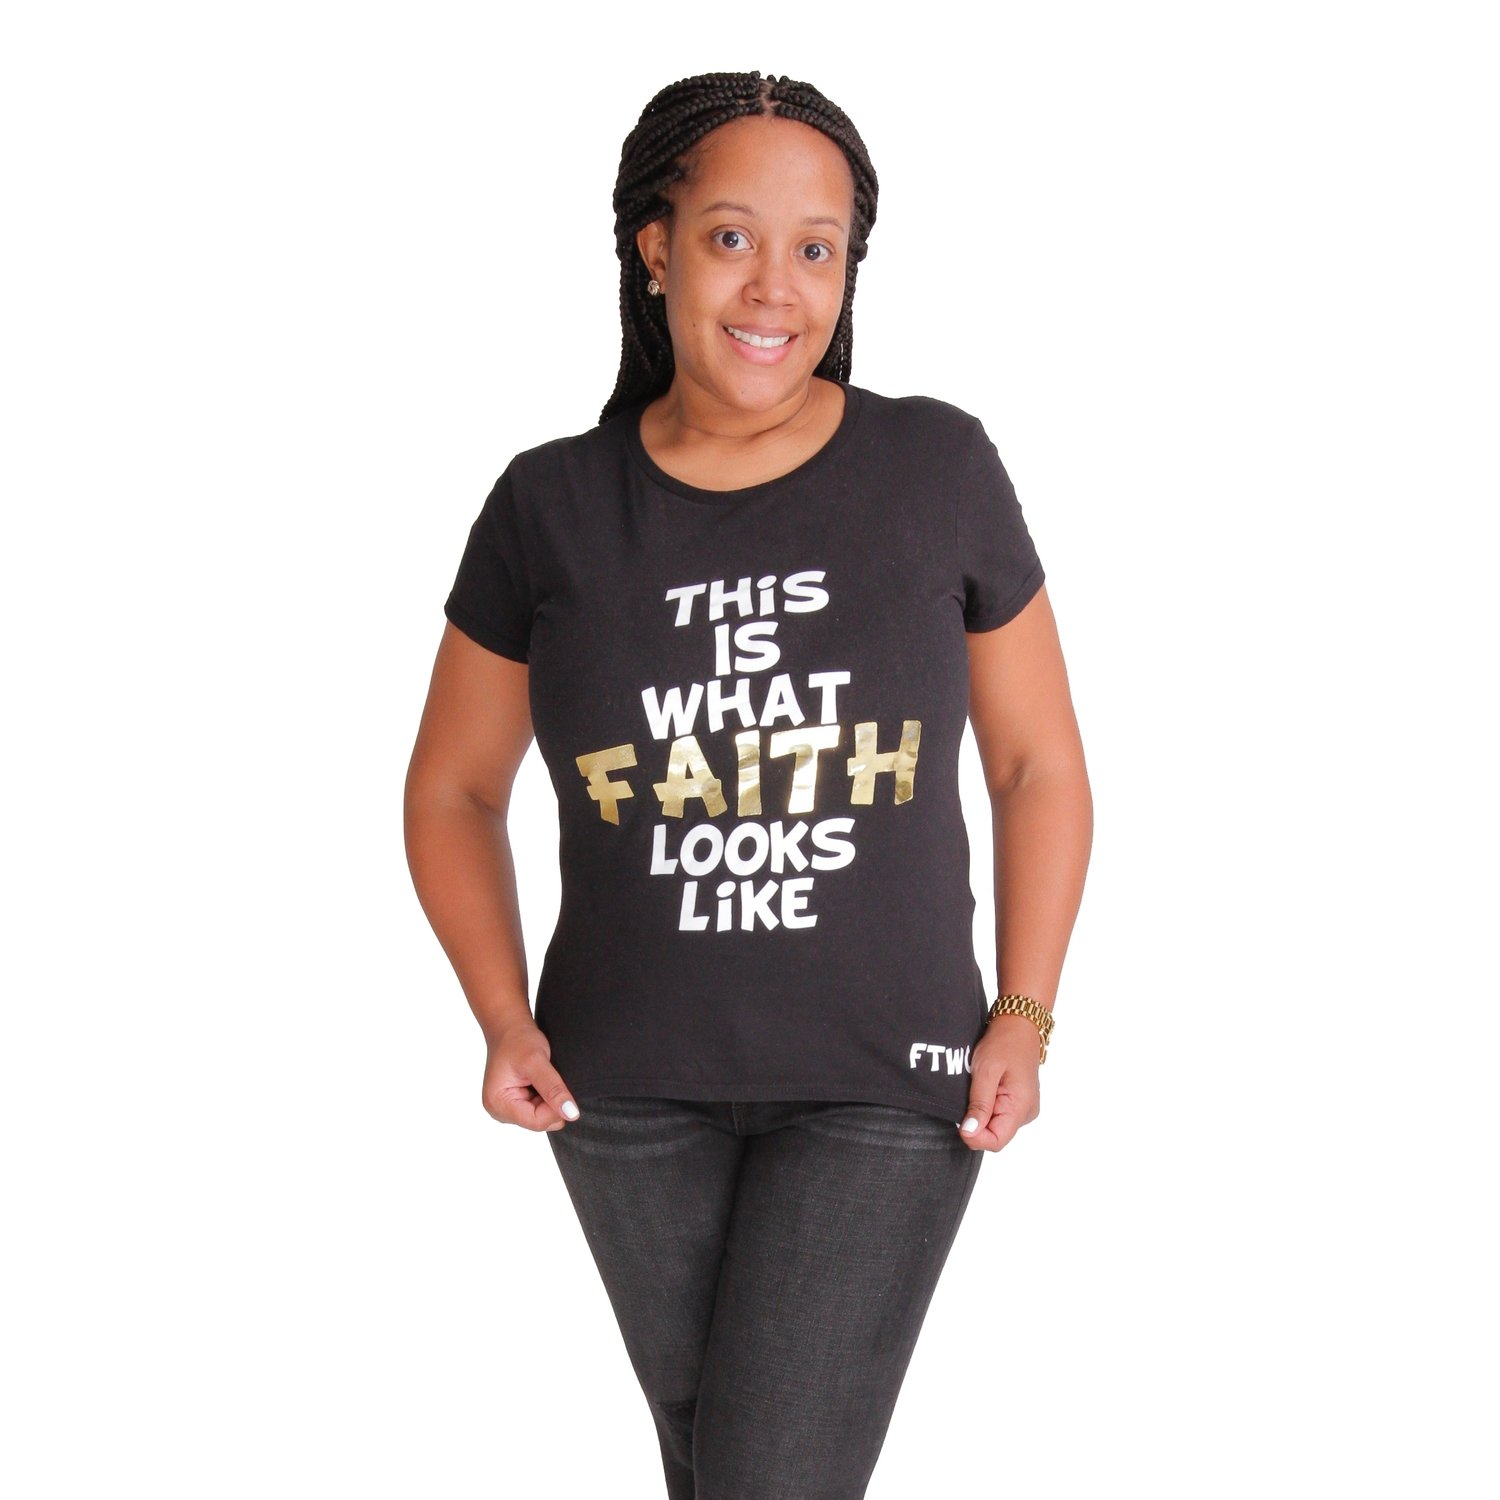 LIMITED EDITION Black Tshirt with Gold Letters